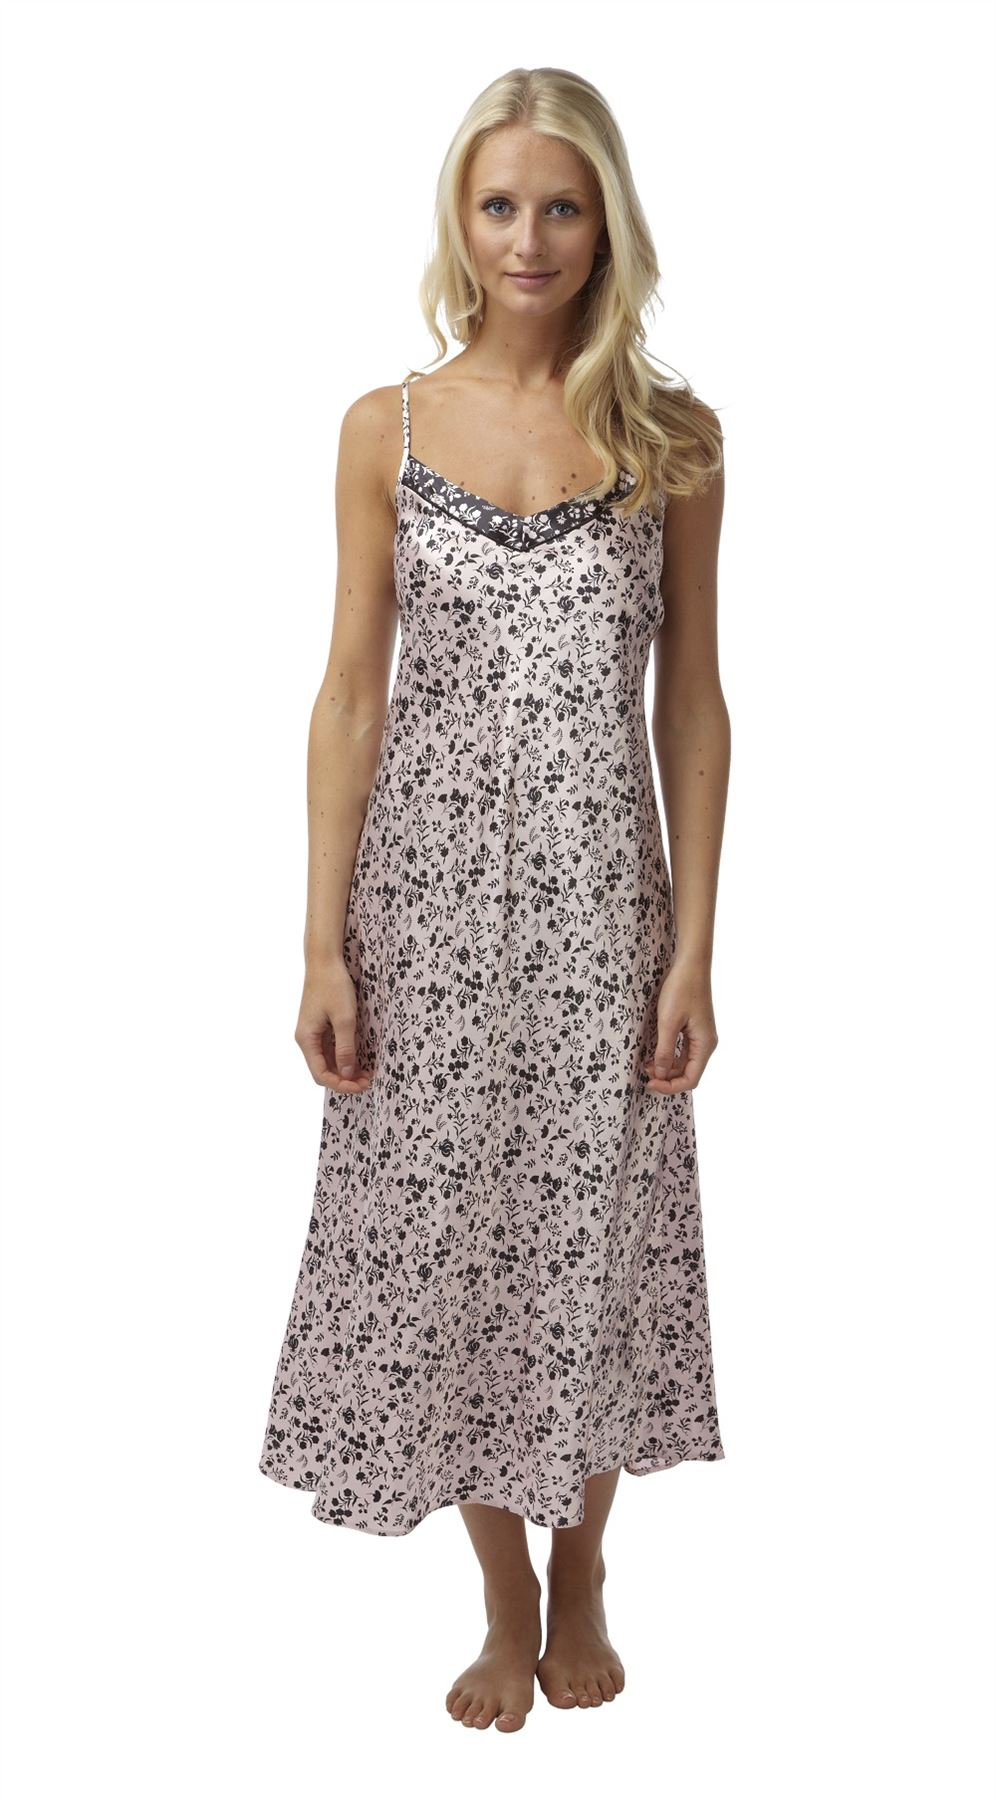 Find great deals on eBay for ladies nightwear. Shop with confidence.